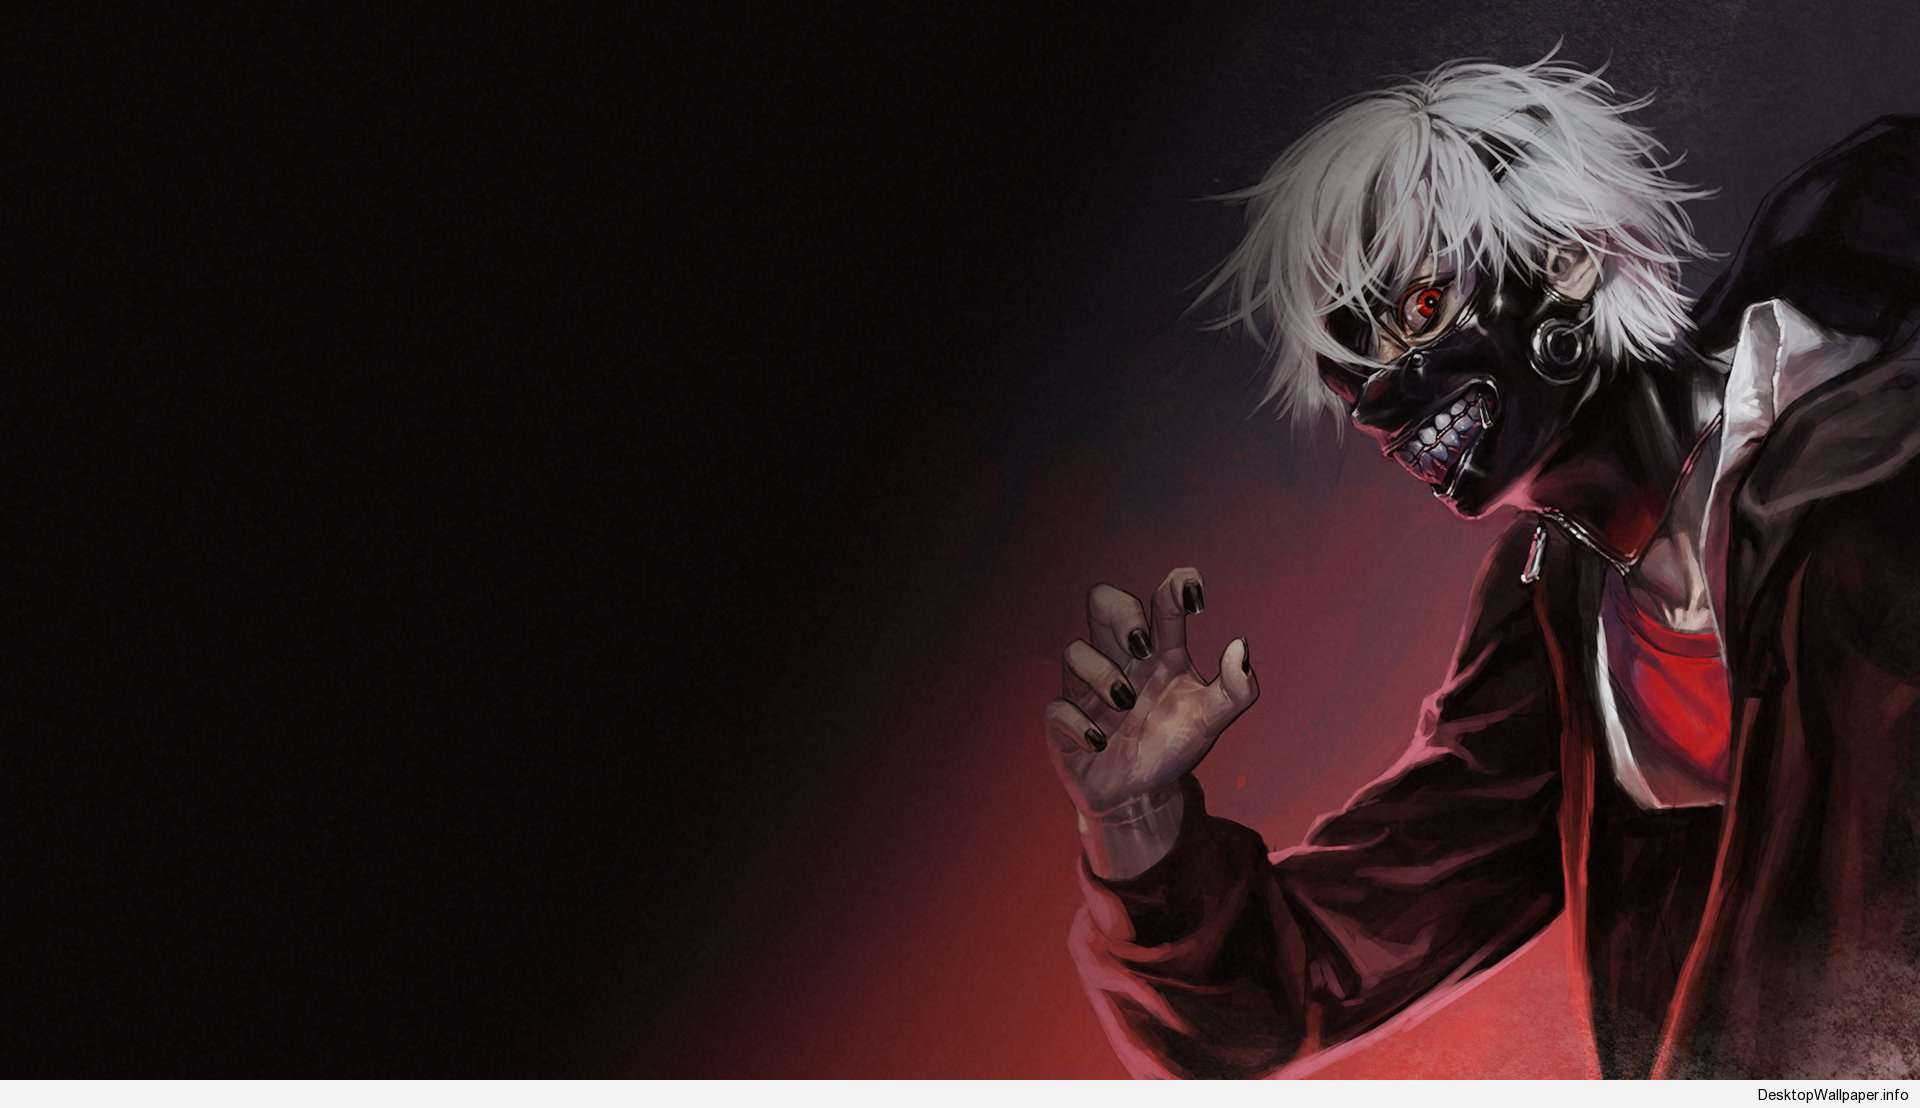 Cool Hd Anime Wallpapers Posted By Ryan Johnson